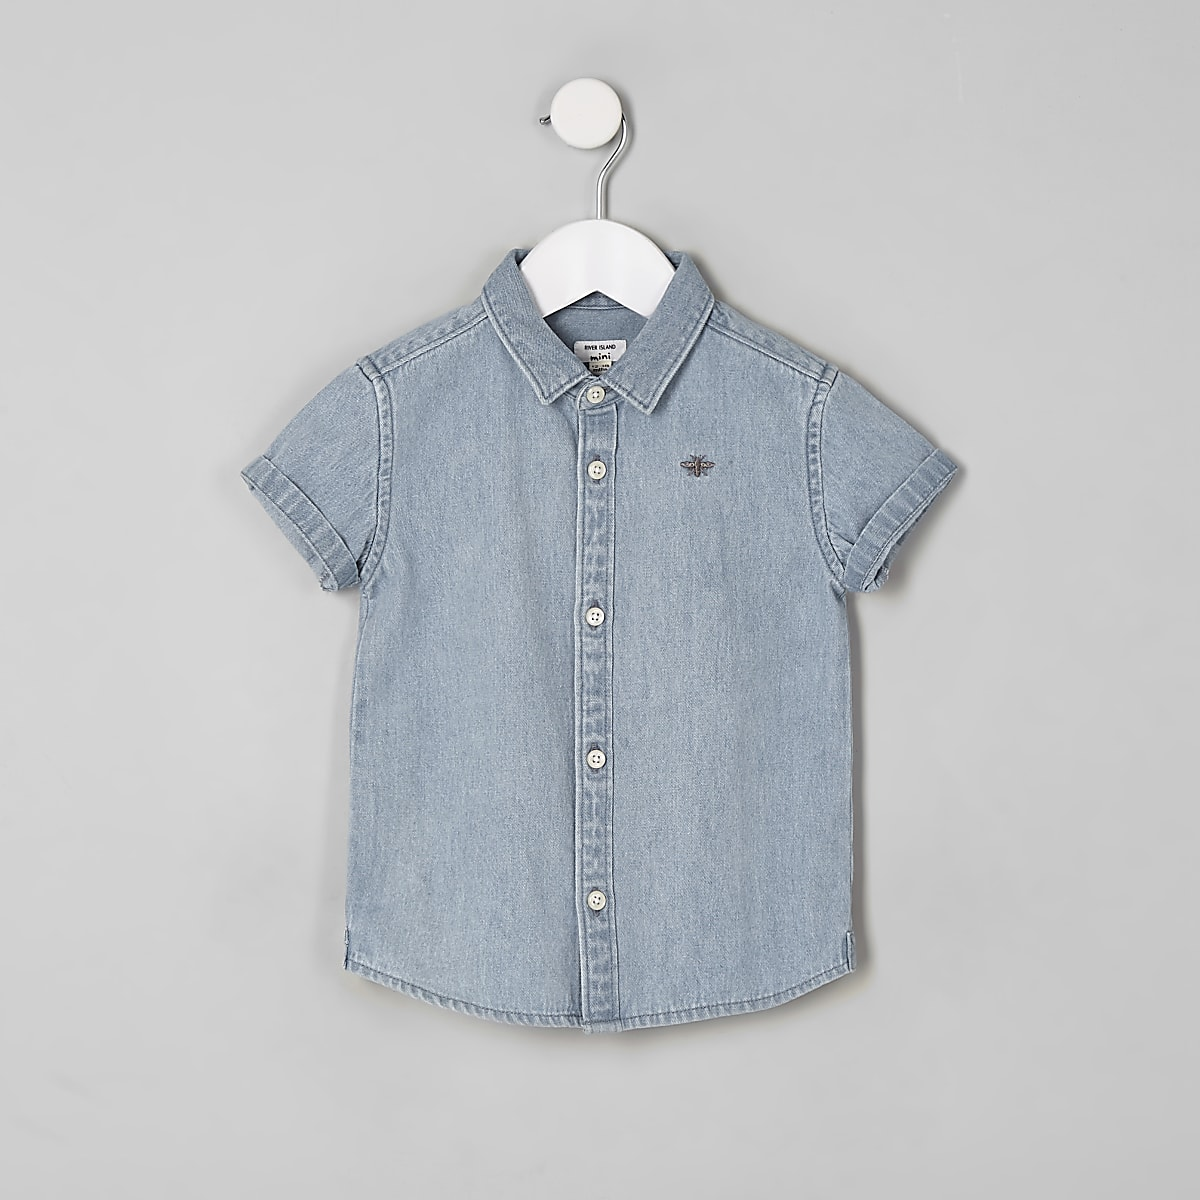 Mini boys blue short sleeve denim shirt